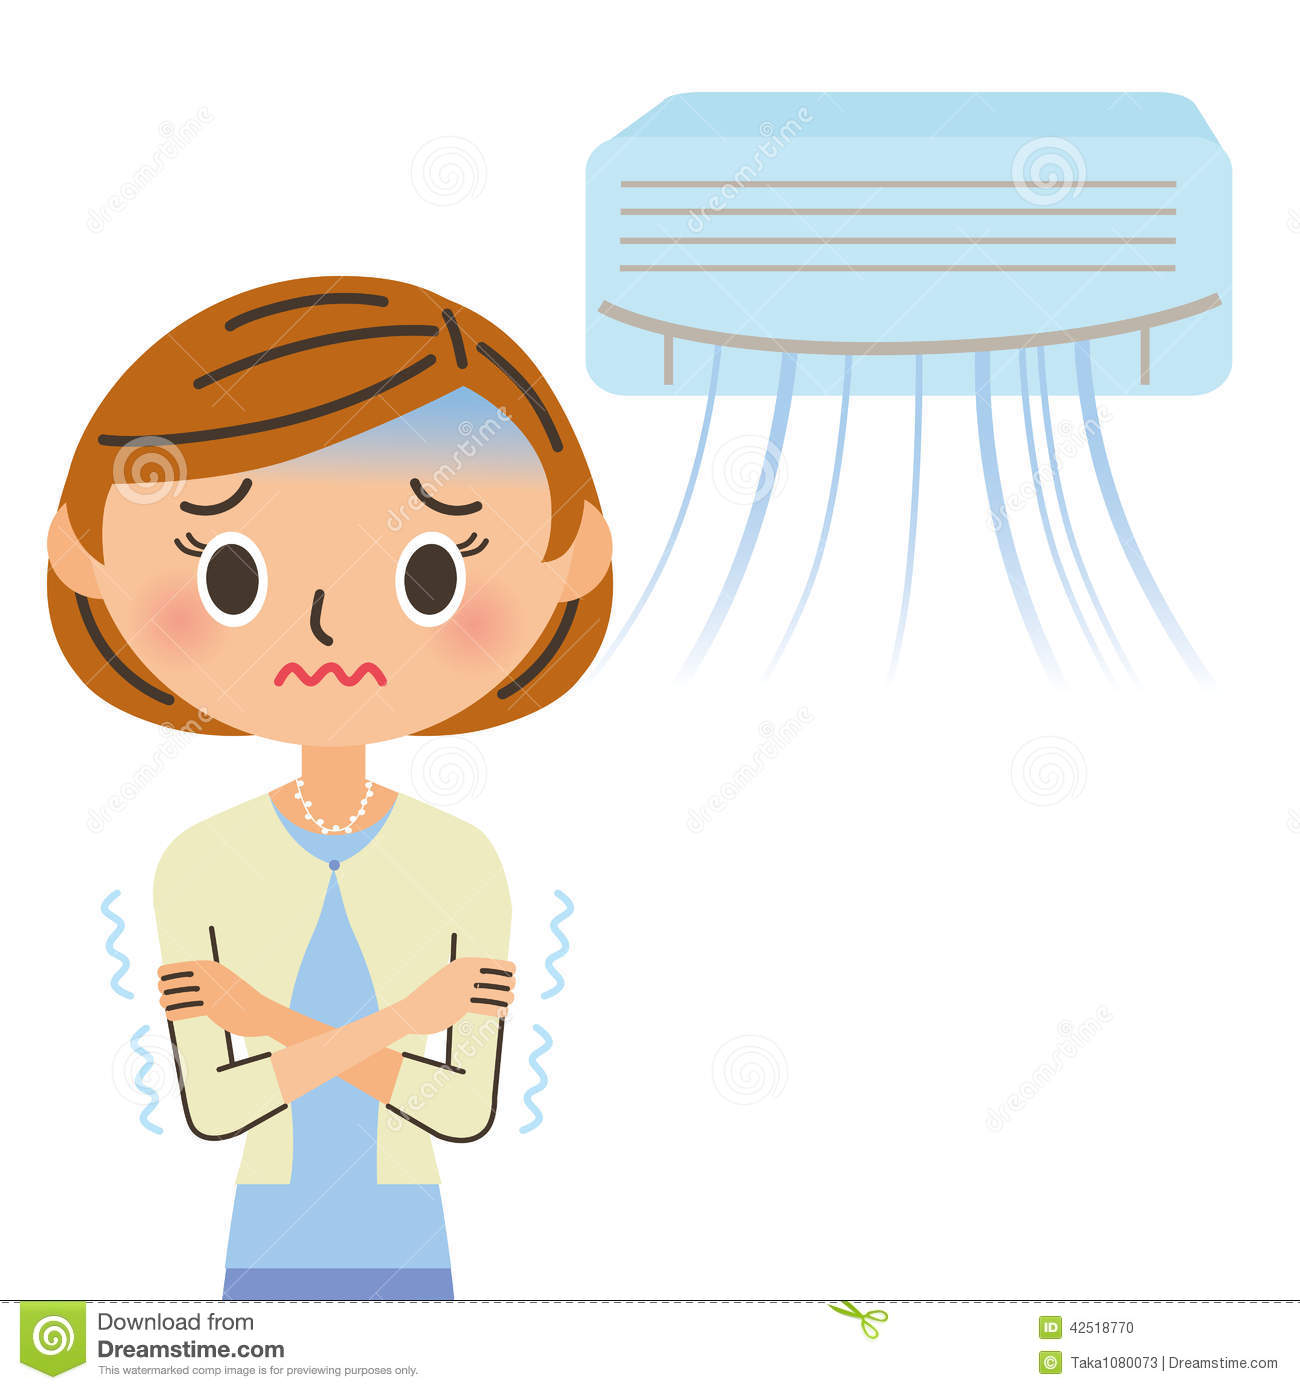 An air conditioner and woman poor circulation stock vector for Air circulation in a room